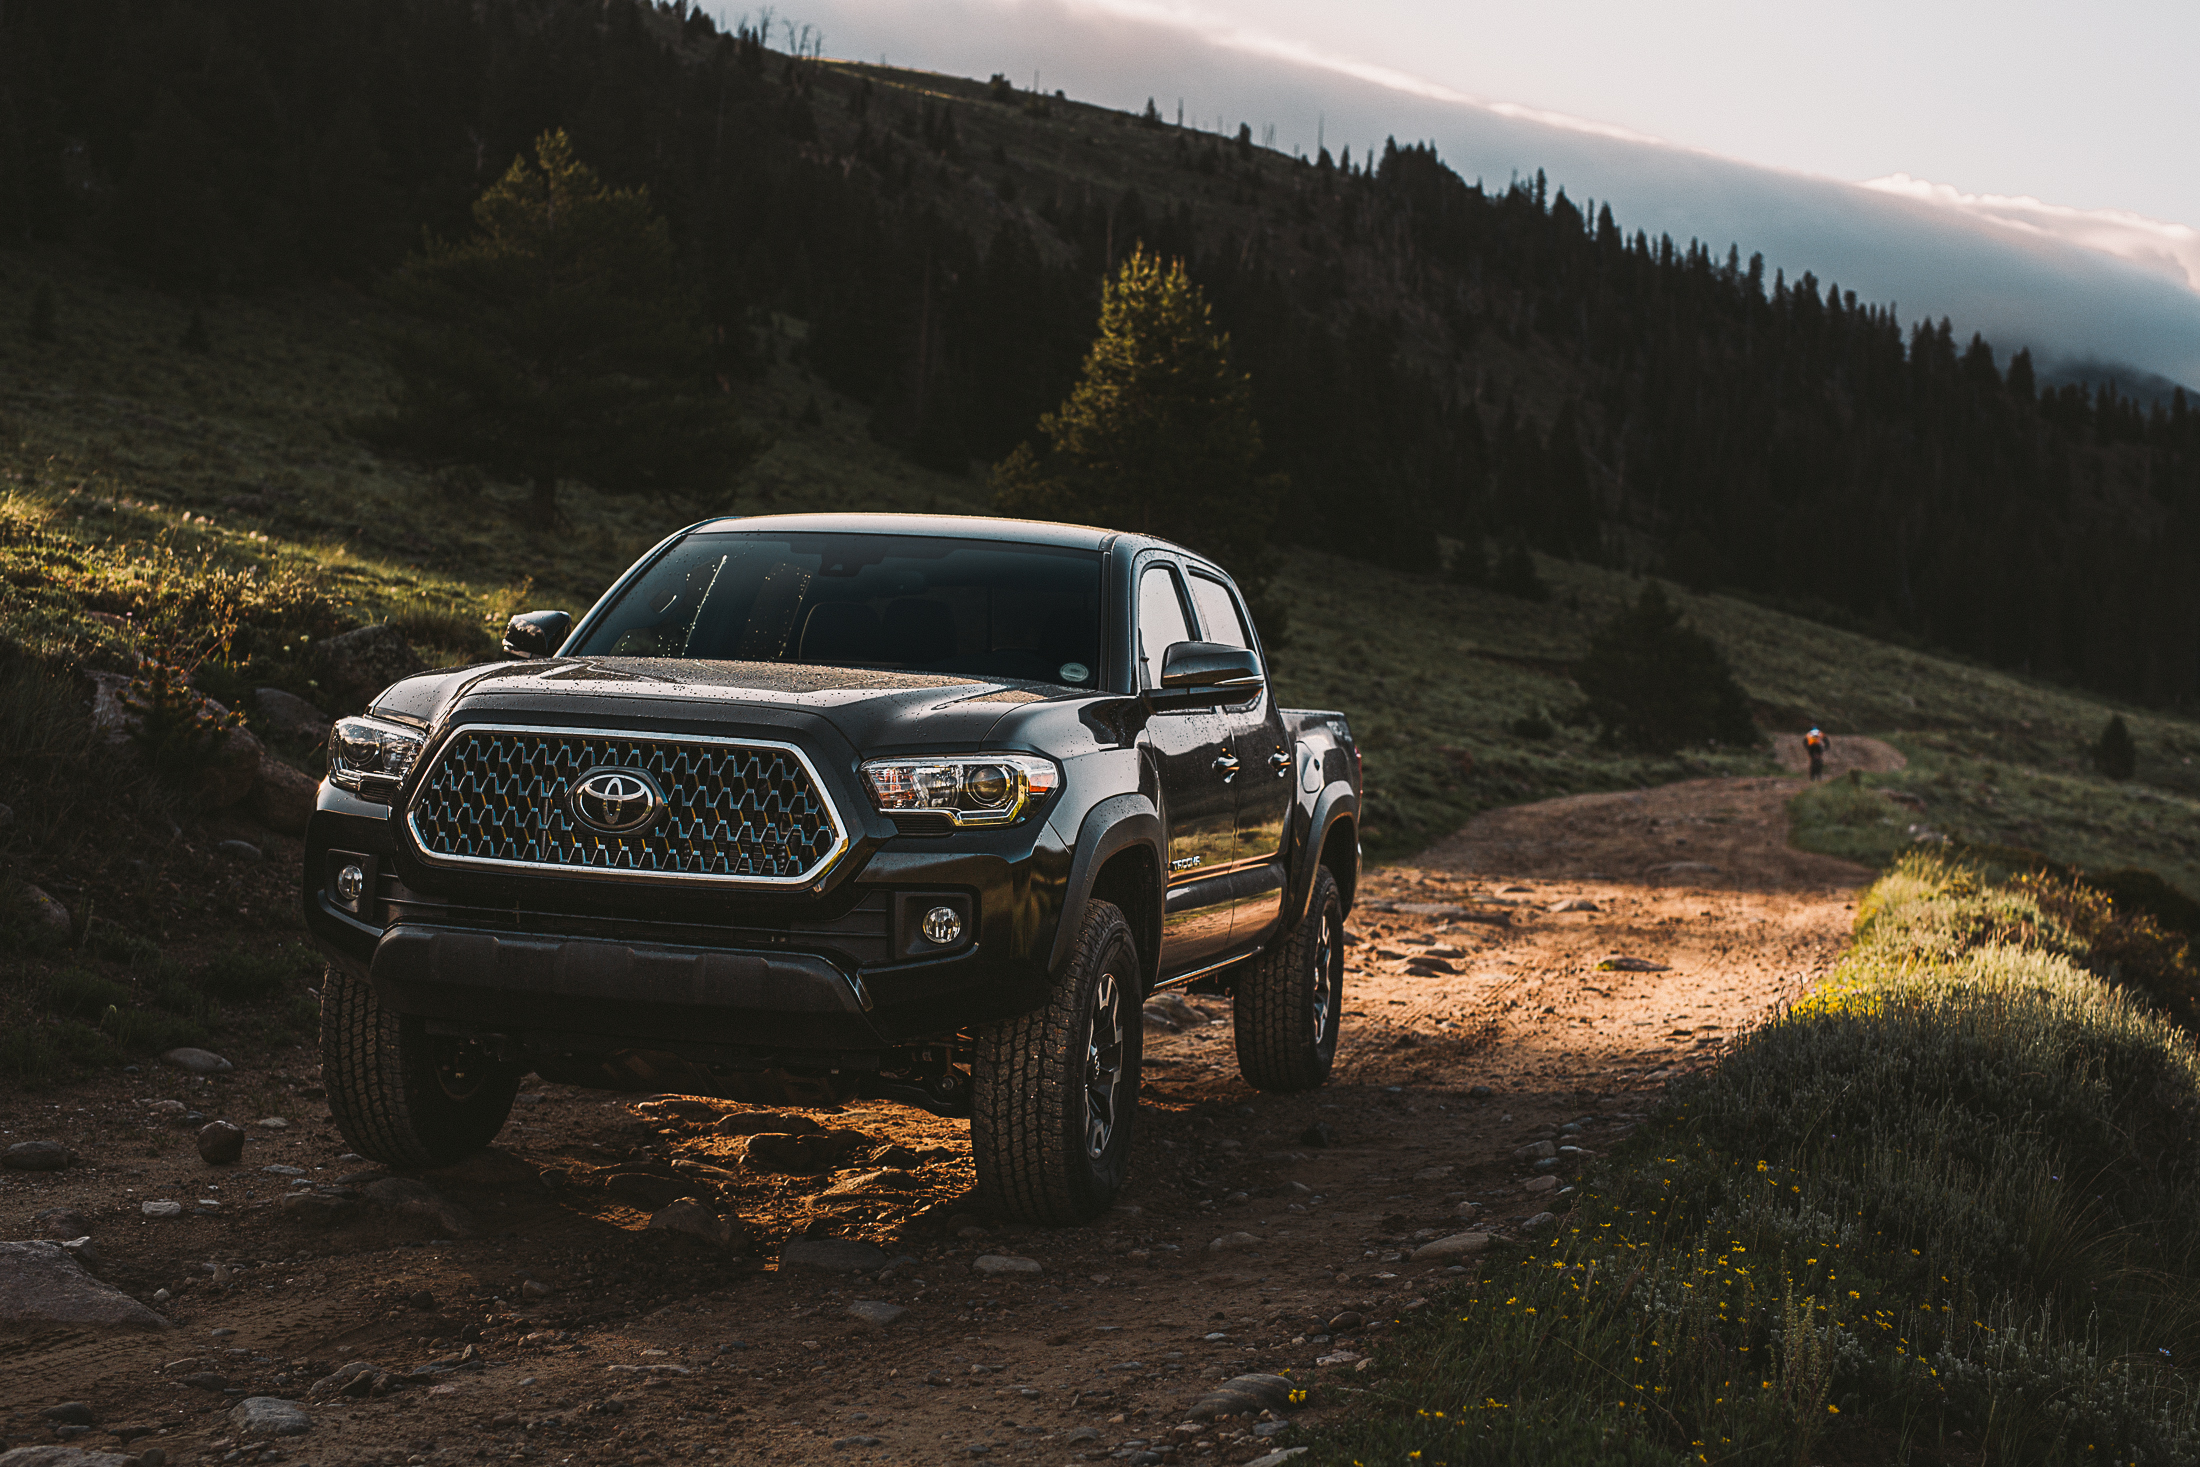 2019_toyota_Tacoma_Photo_jimmy_bowron_colorado_leadville (1 of 1).jpg